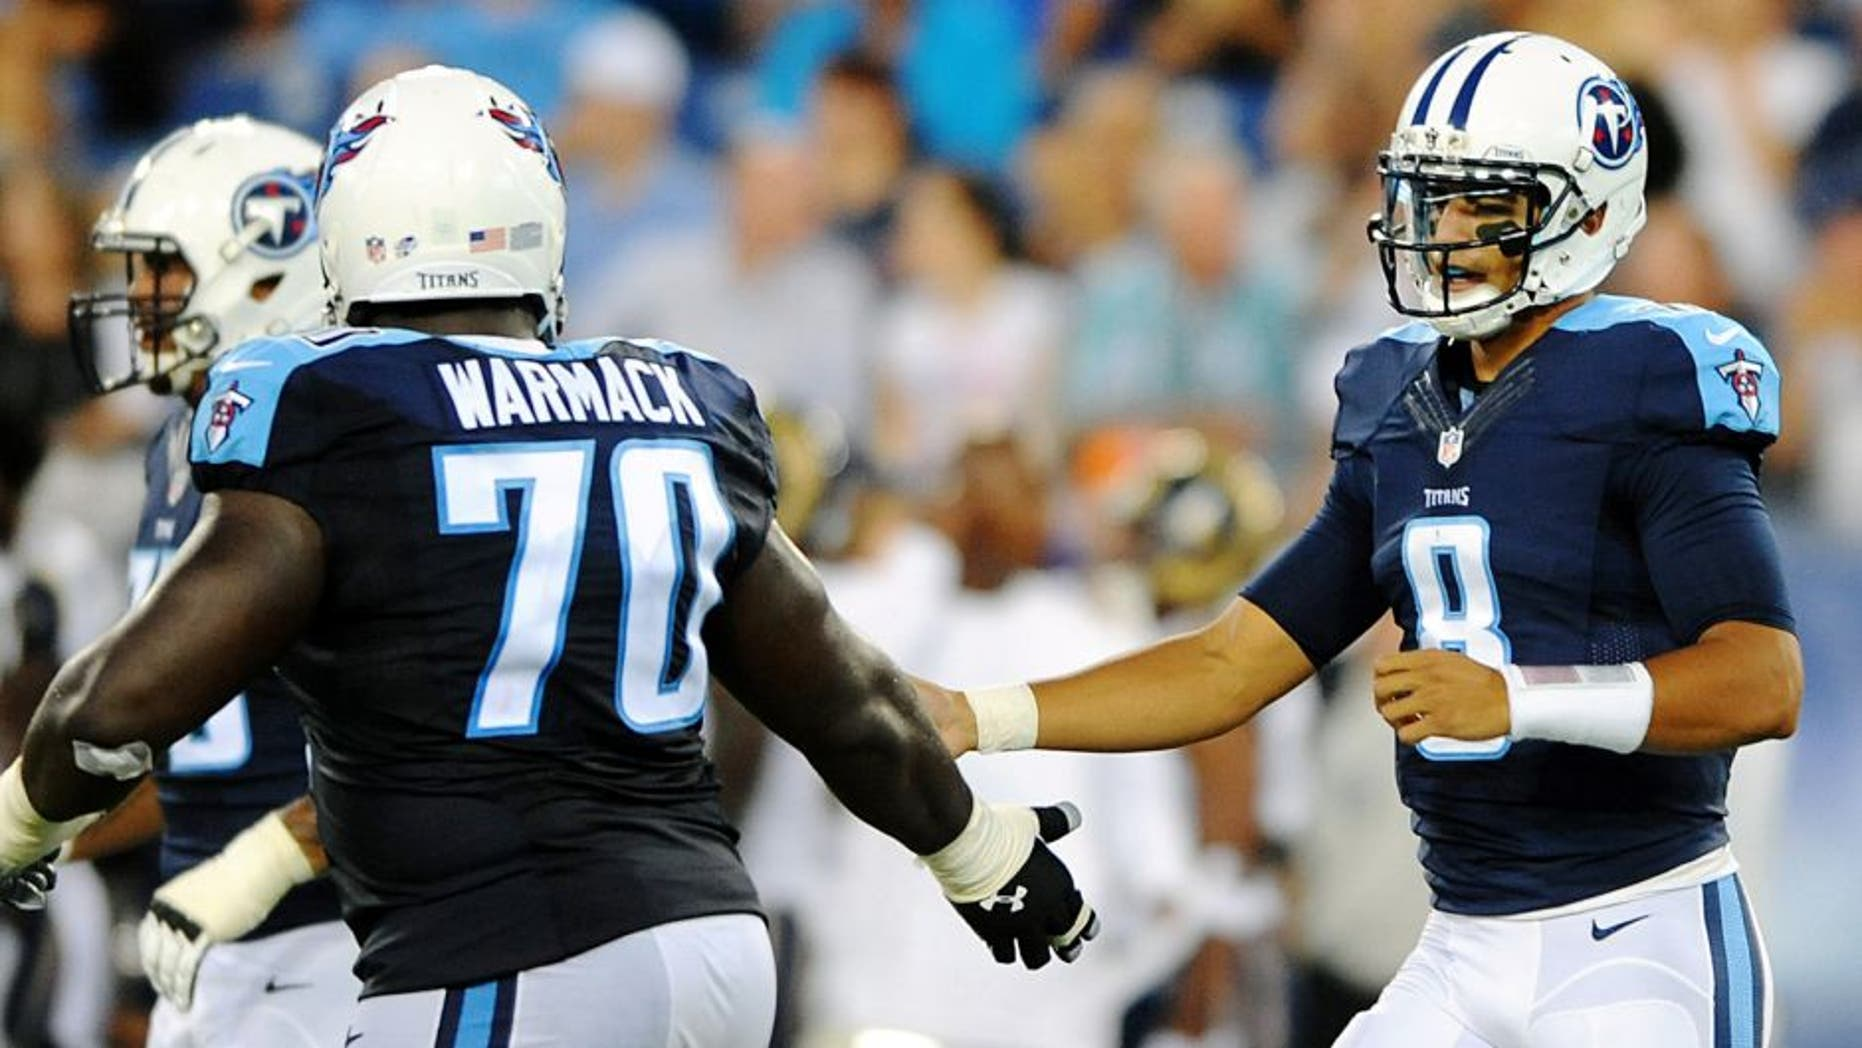 Aug 23, 2015; Nashville, TN, USA; Tennessee Titans quarterback Marcus Mariota (8) is congratulated by guard Chance Warmack (70) after completing a first down during the first half against the St. Louis Rams at Nissan Stadium. Mandatory Credit: Christopher Hanewinckel-USA TODAY Sports